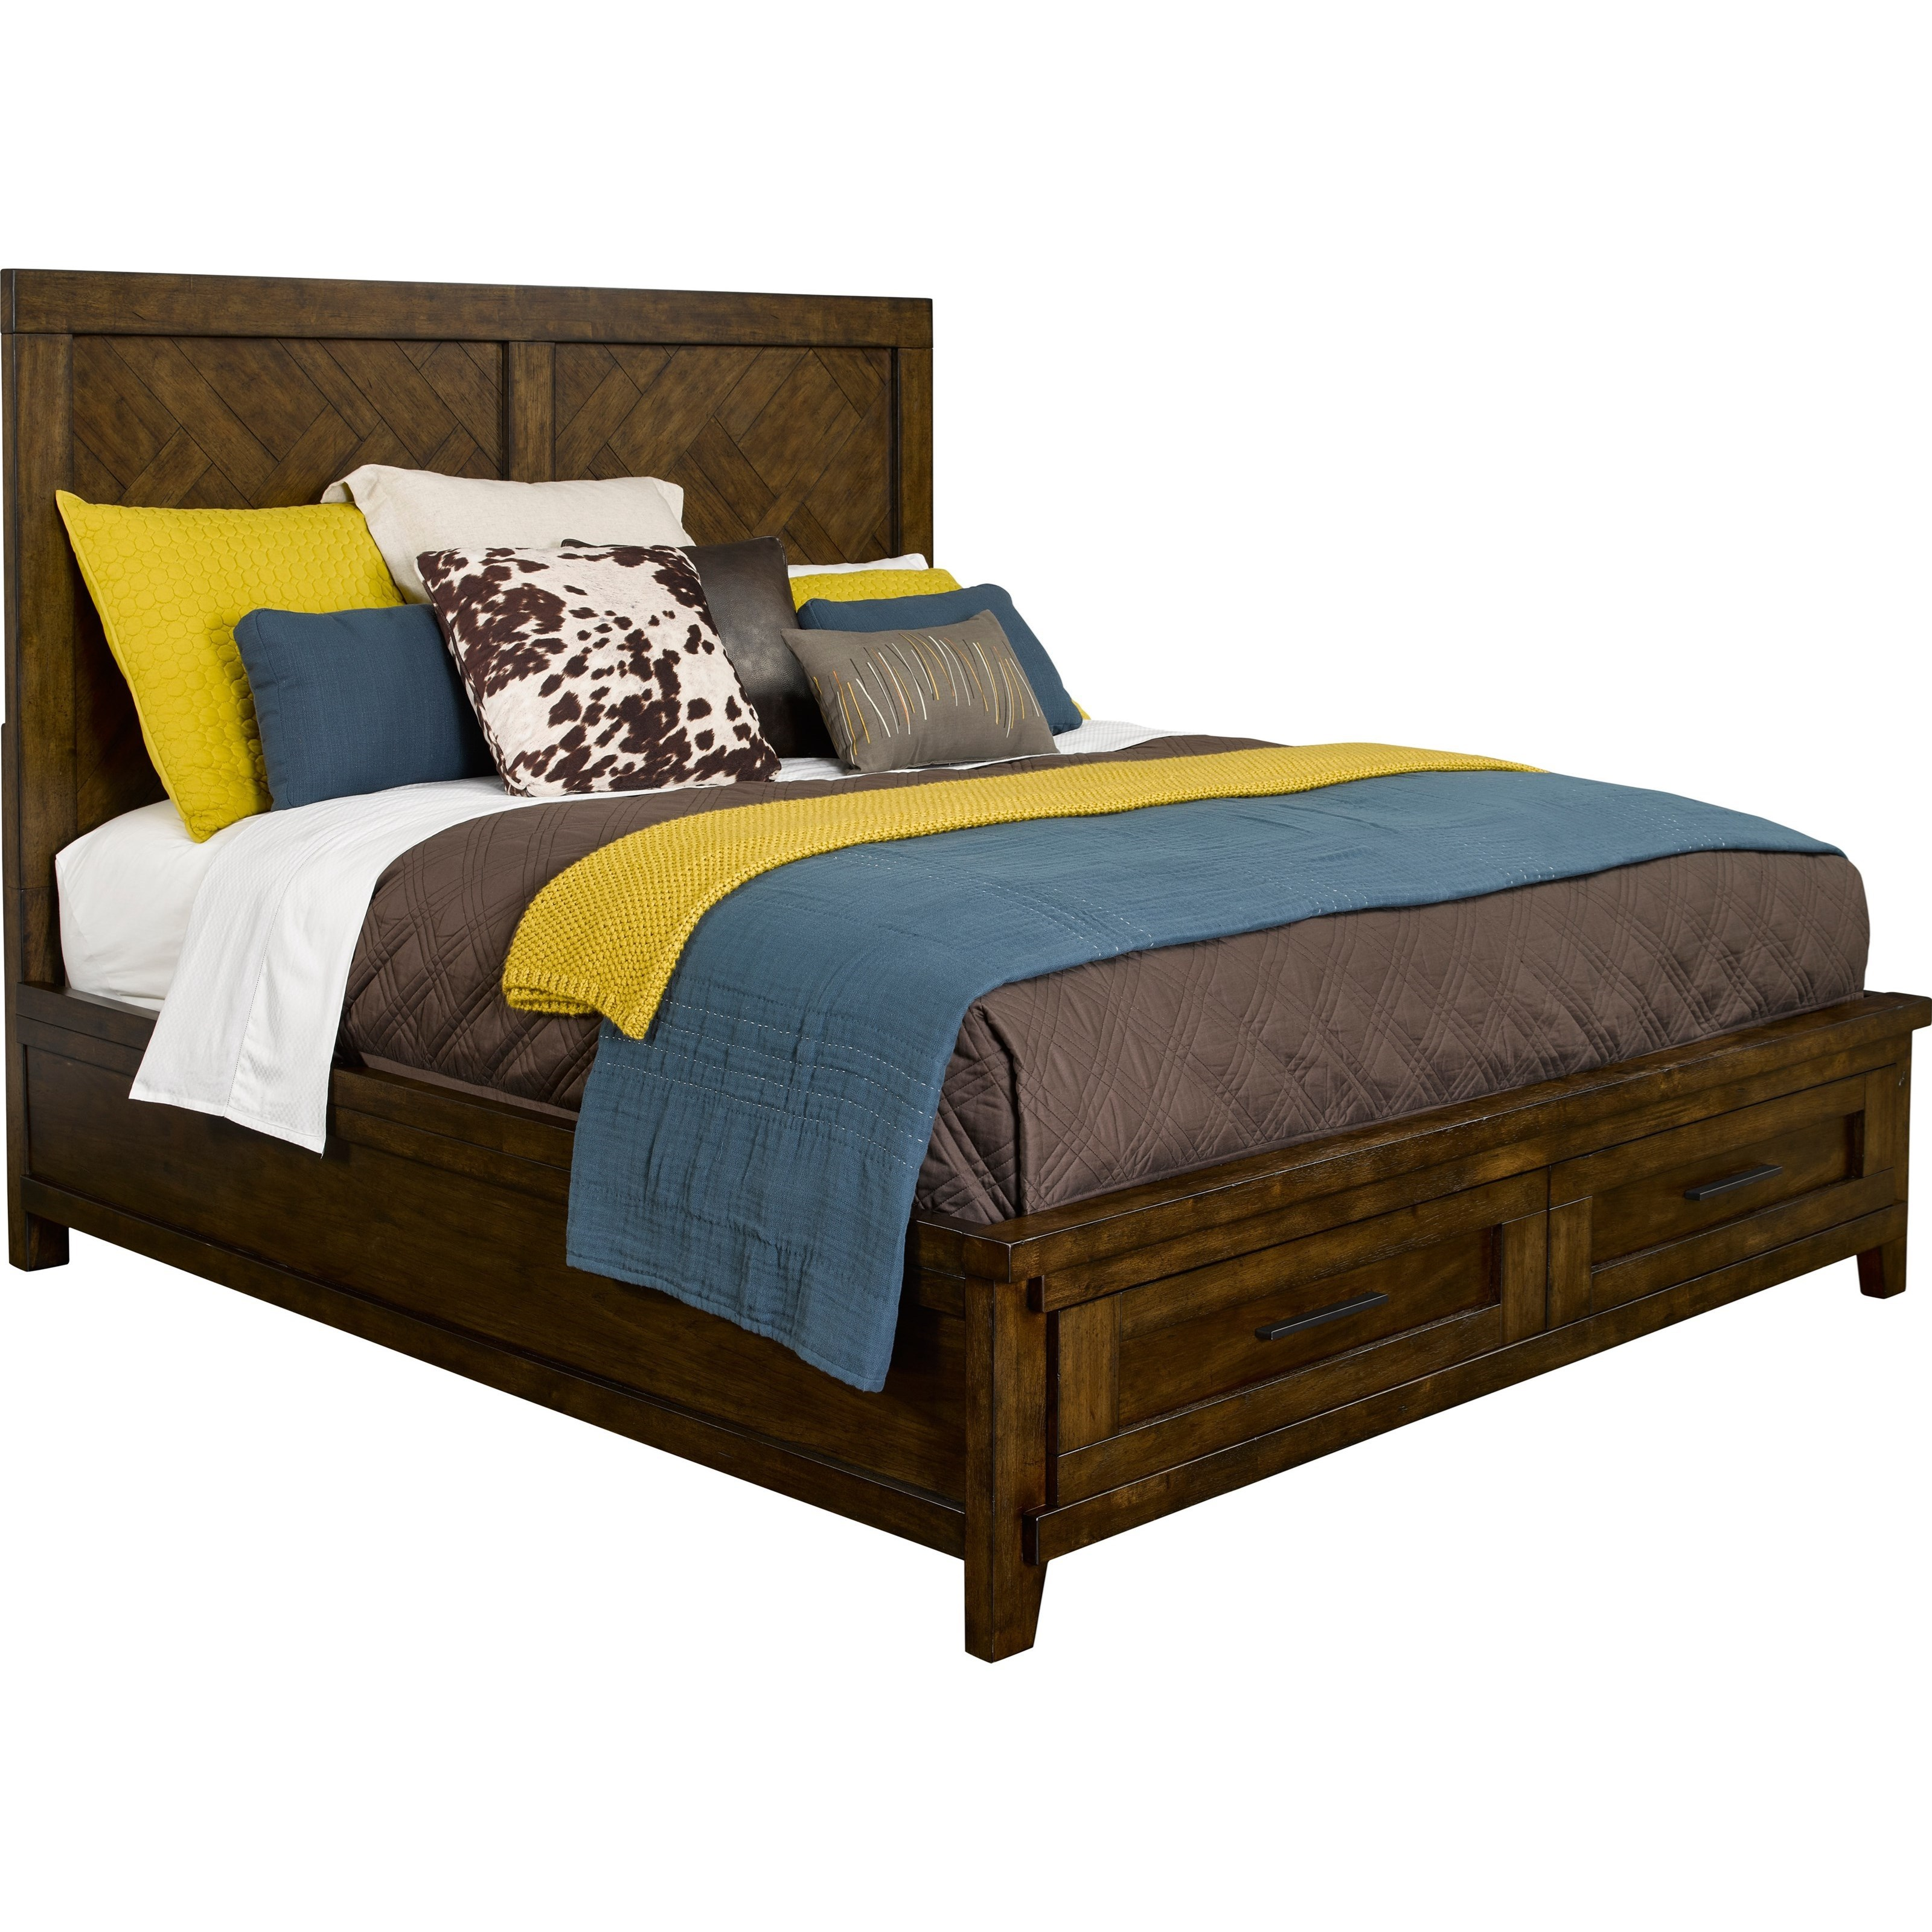 Broyhill furniture pieceworks queen panel storage bed with for Broyhill sofa bed